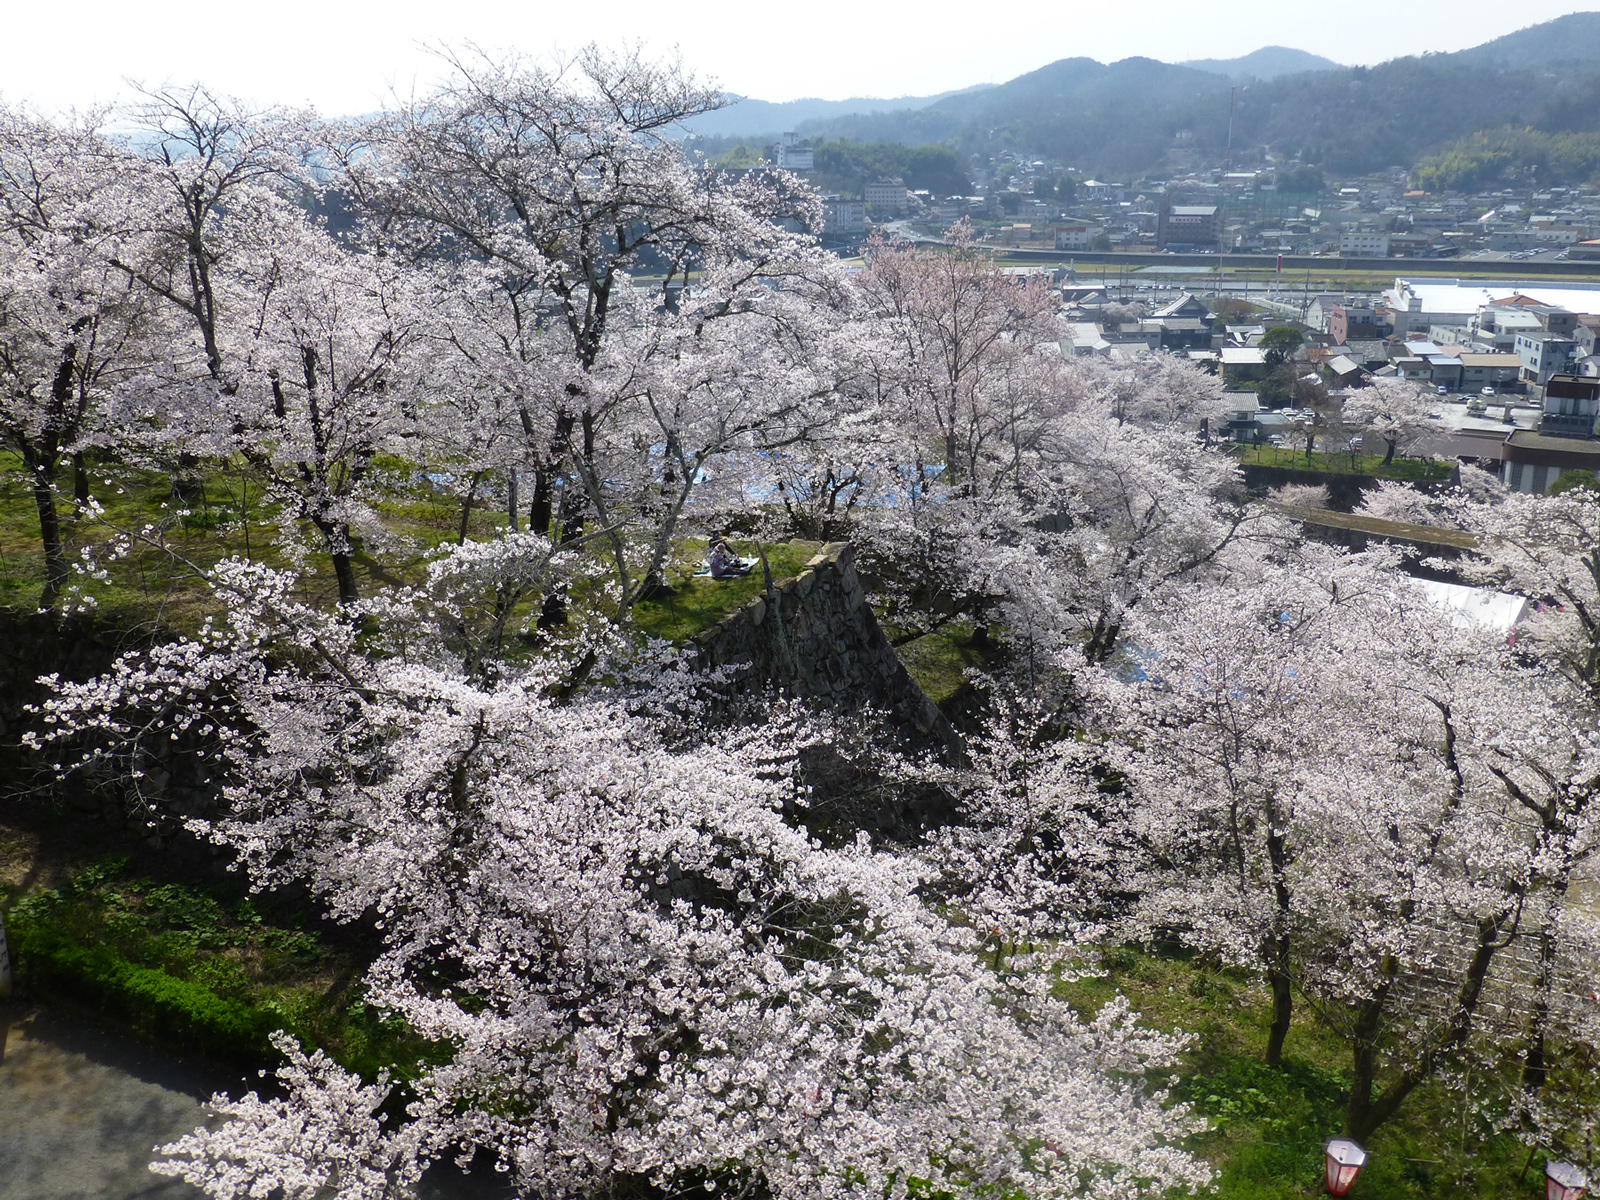 Overlooking the tops of the sakura from the top of Tsuyama Castle